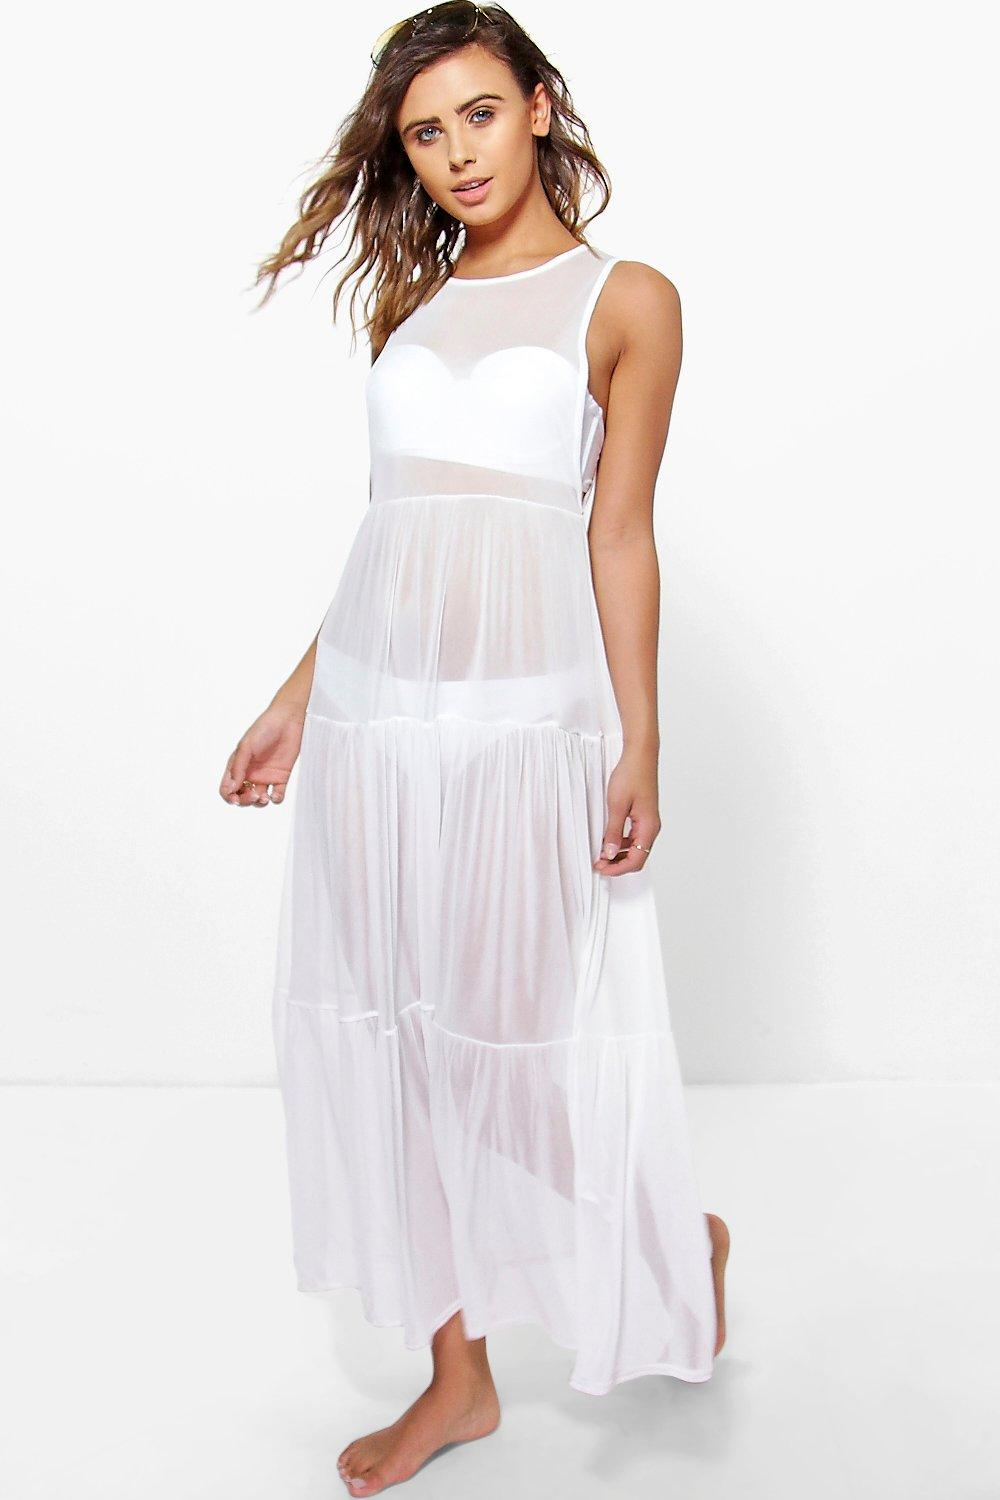 Lulu All Over Mesh Tiered Beach Cover Up white